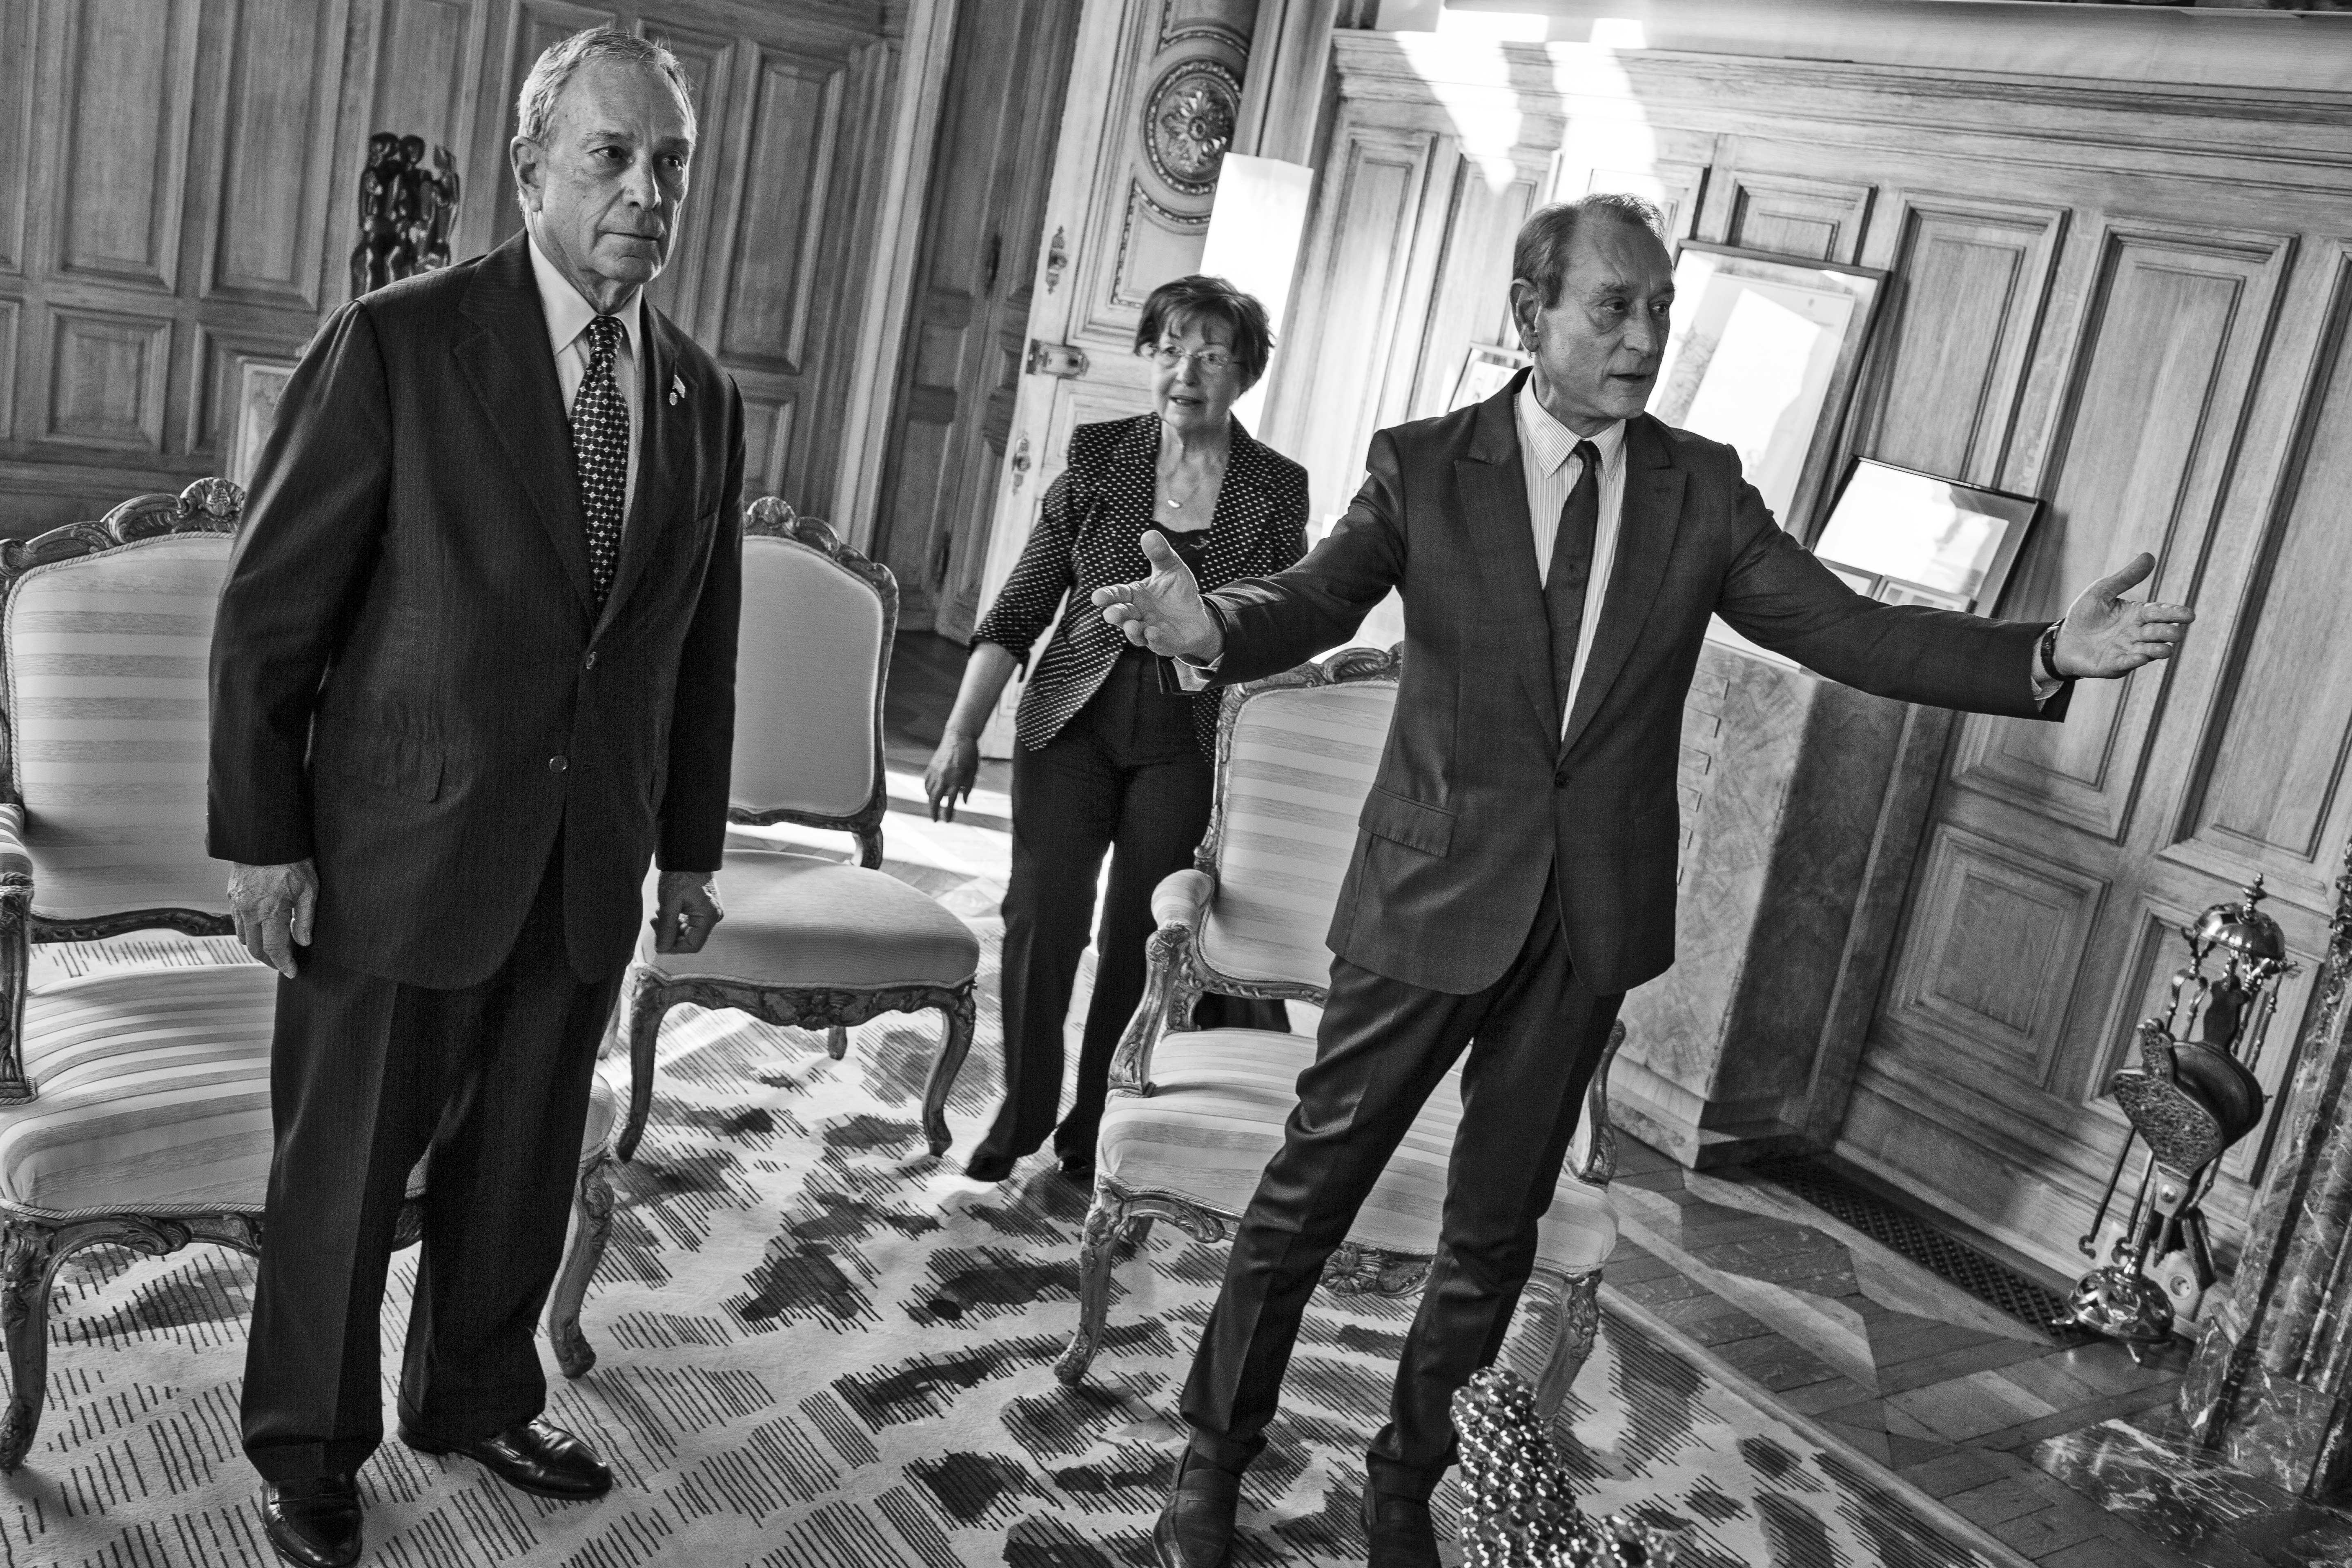 Bloomberg meets with Bertrand Delanoe, the mayor of Paris, at the mayor's office at the 'Hotel de Ville' in Paris.